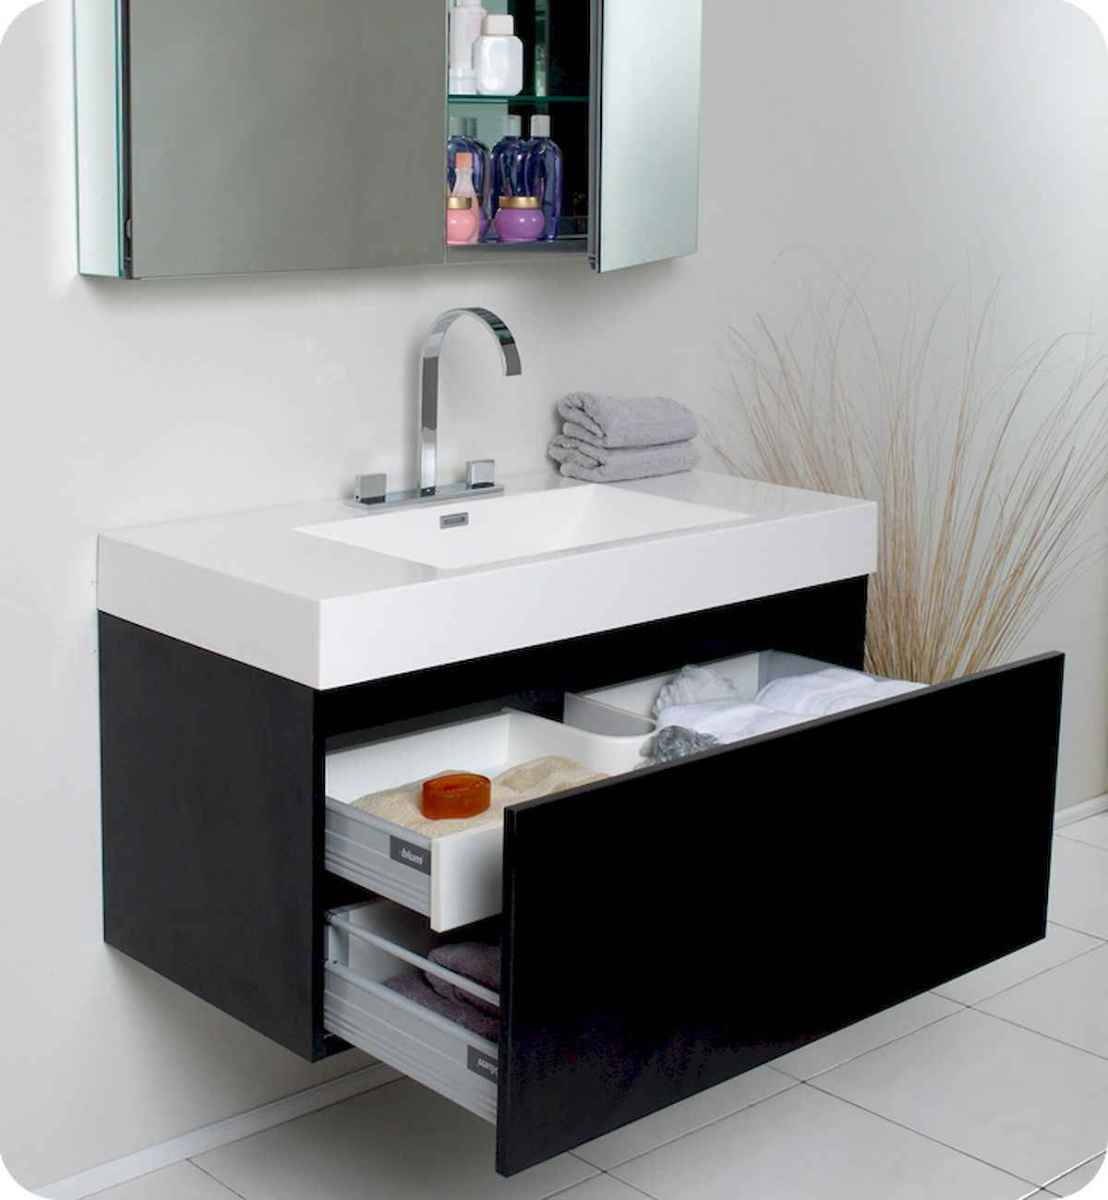 70 modern bathroom cabinets ideas decorations and remodel (40)